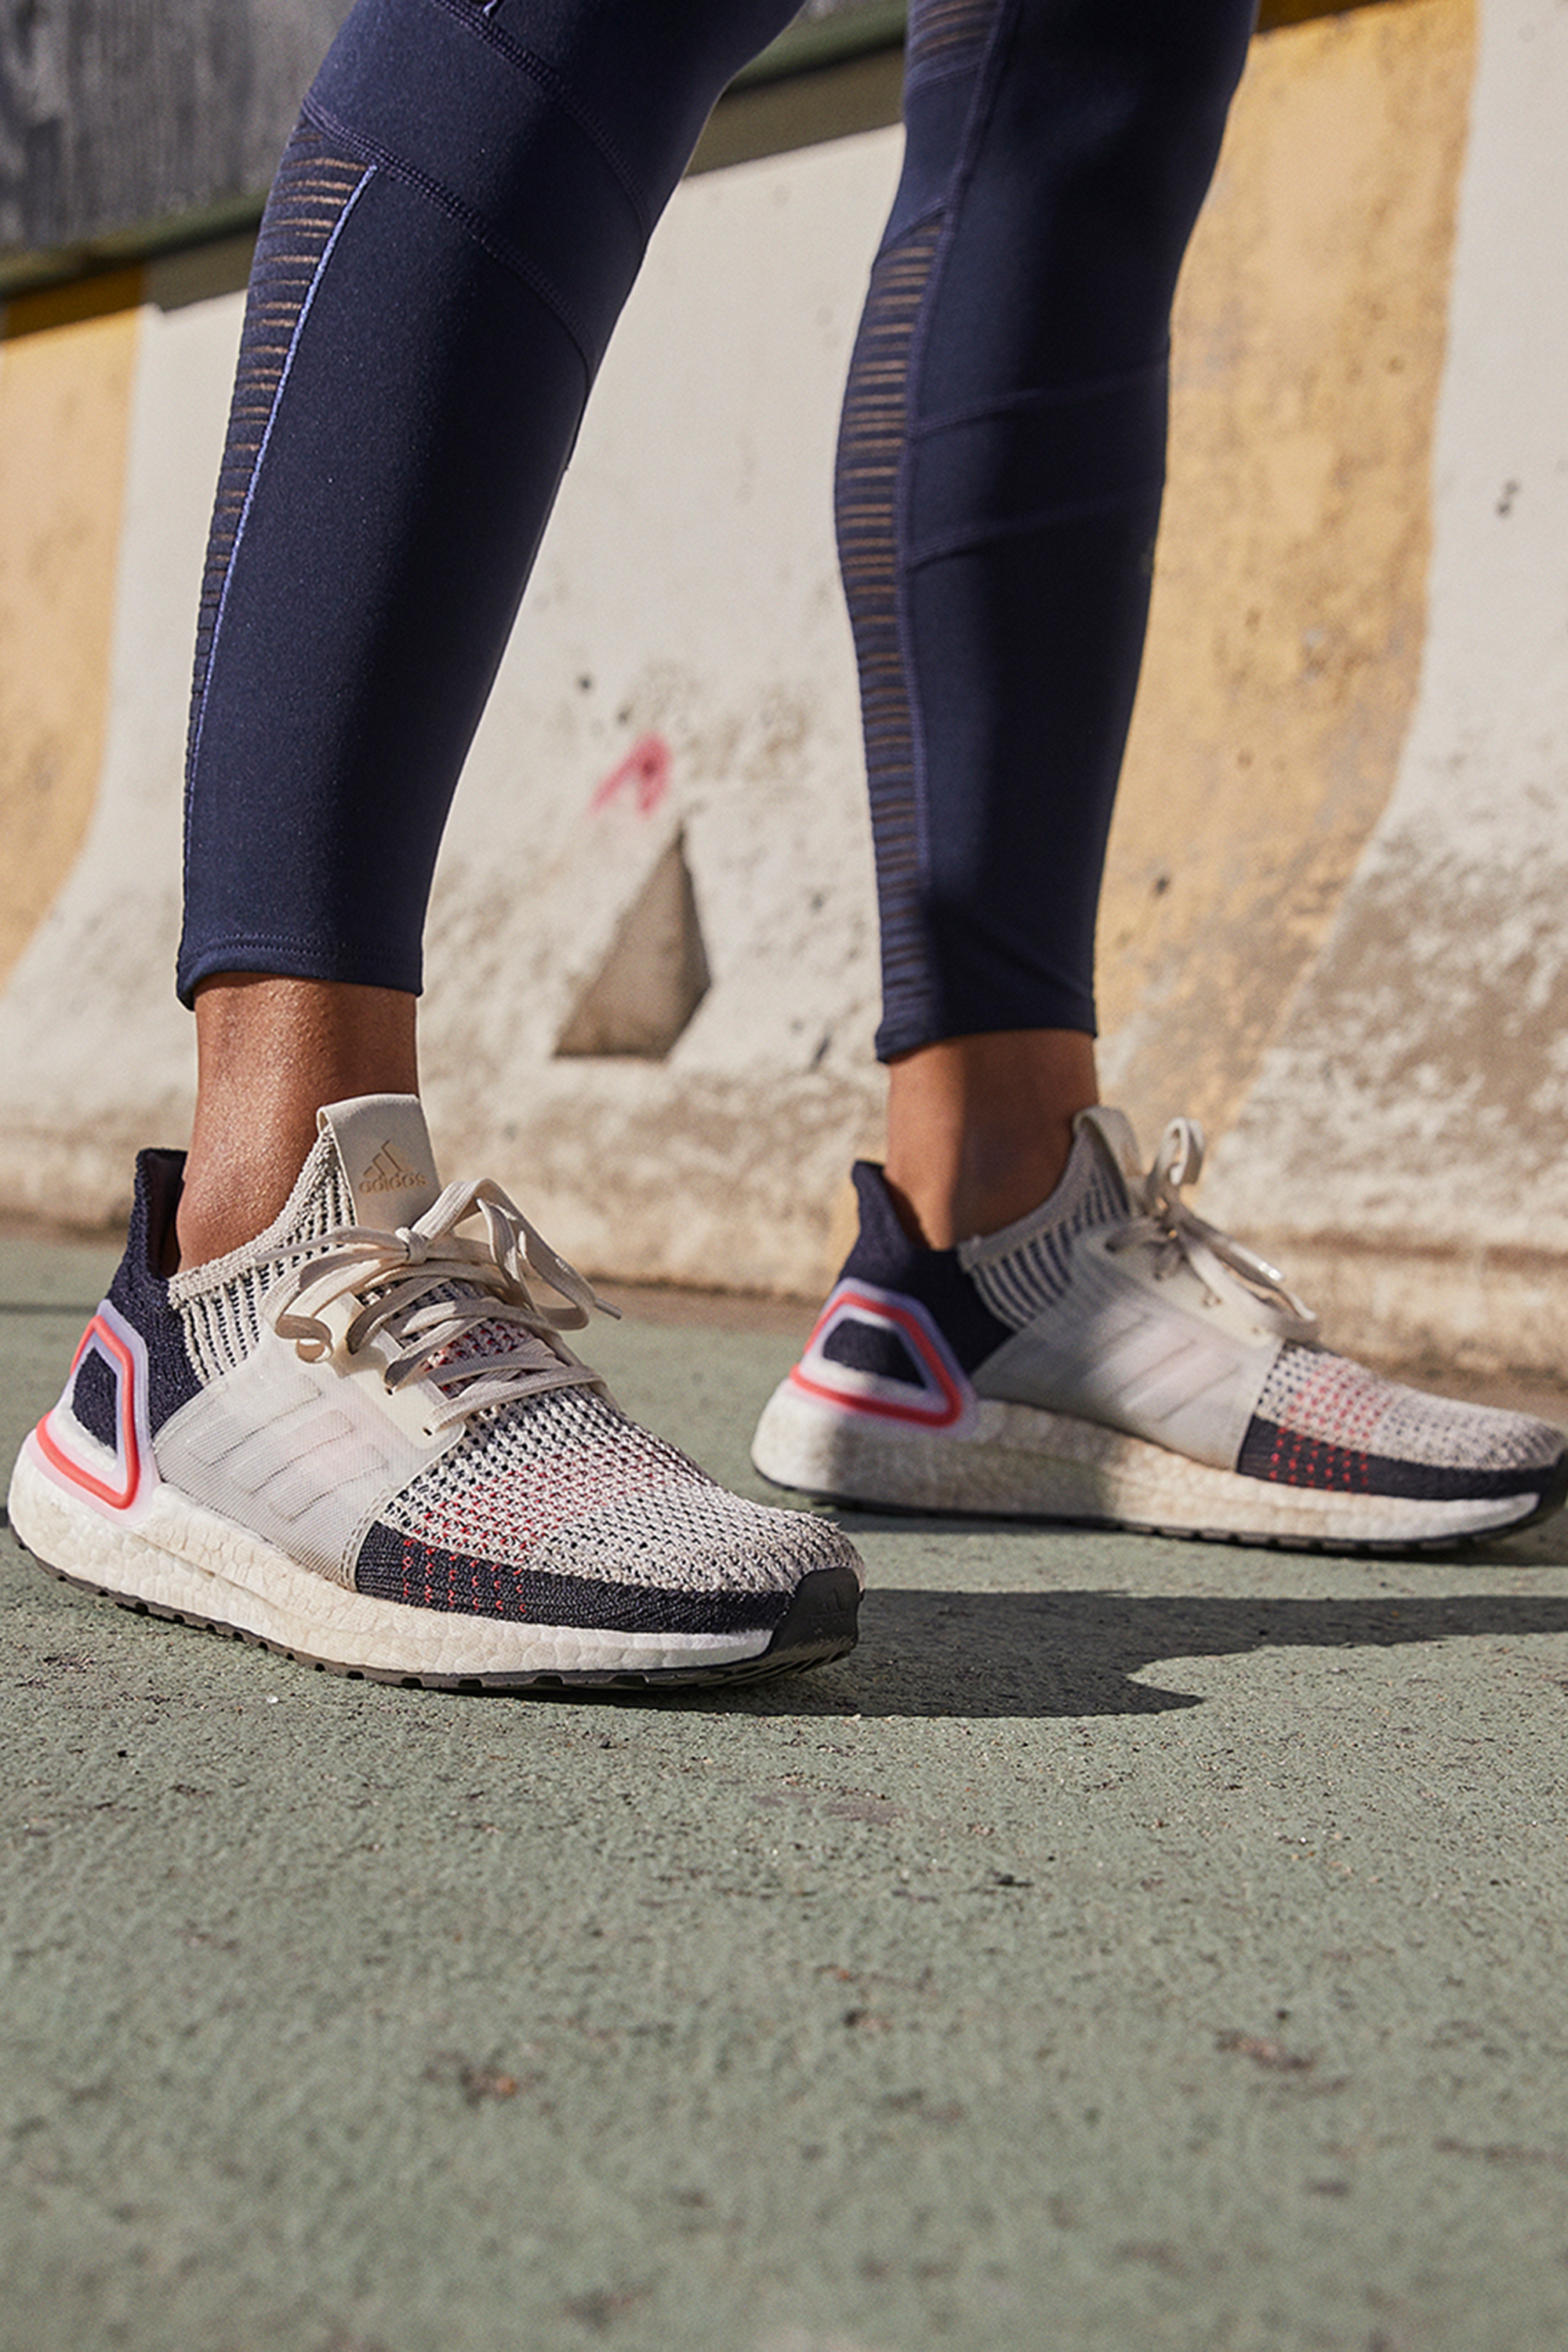 ULTRABOOST 19 | Womens fashion sneakers, Workout shoes